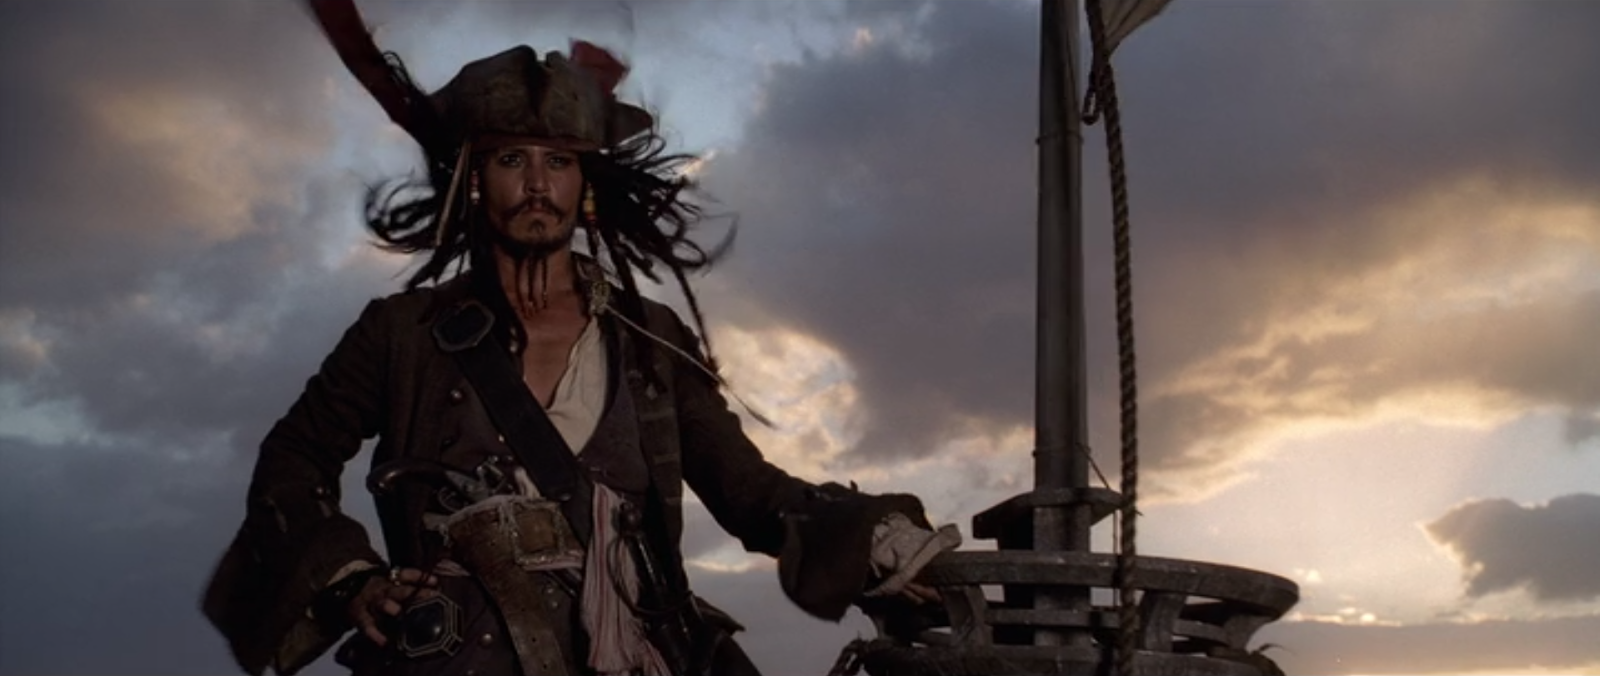 Aom Movies Et Al Pirates Of The Caribbean The Curse Of The Black Pearl 2003